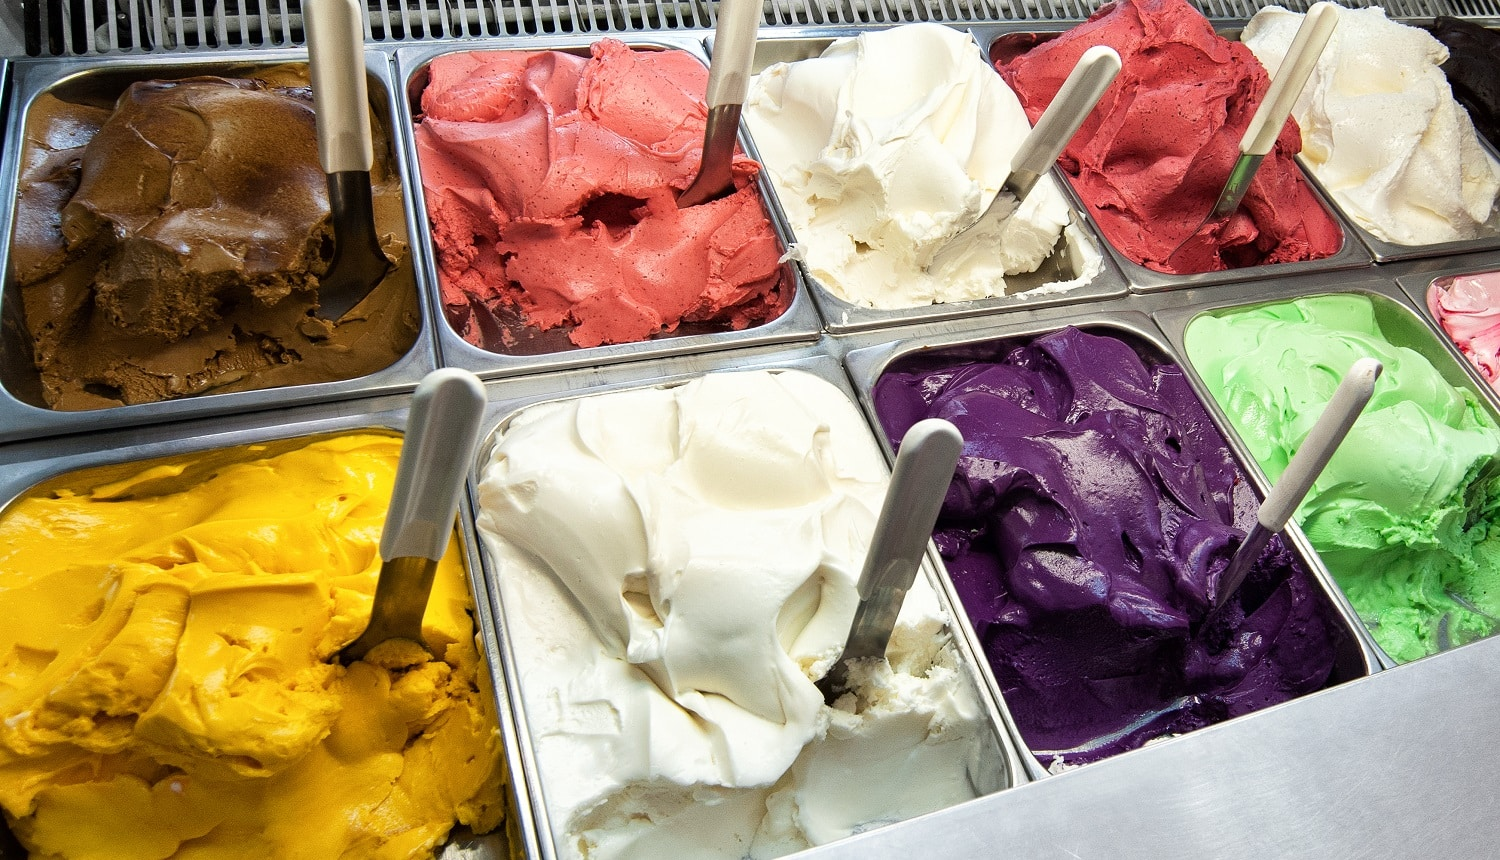 Colorful display of an assortment of freshly made different fruity flavoured Italian ice cream in the window of an ice cream parlour or shop for sale as takeaway desserts